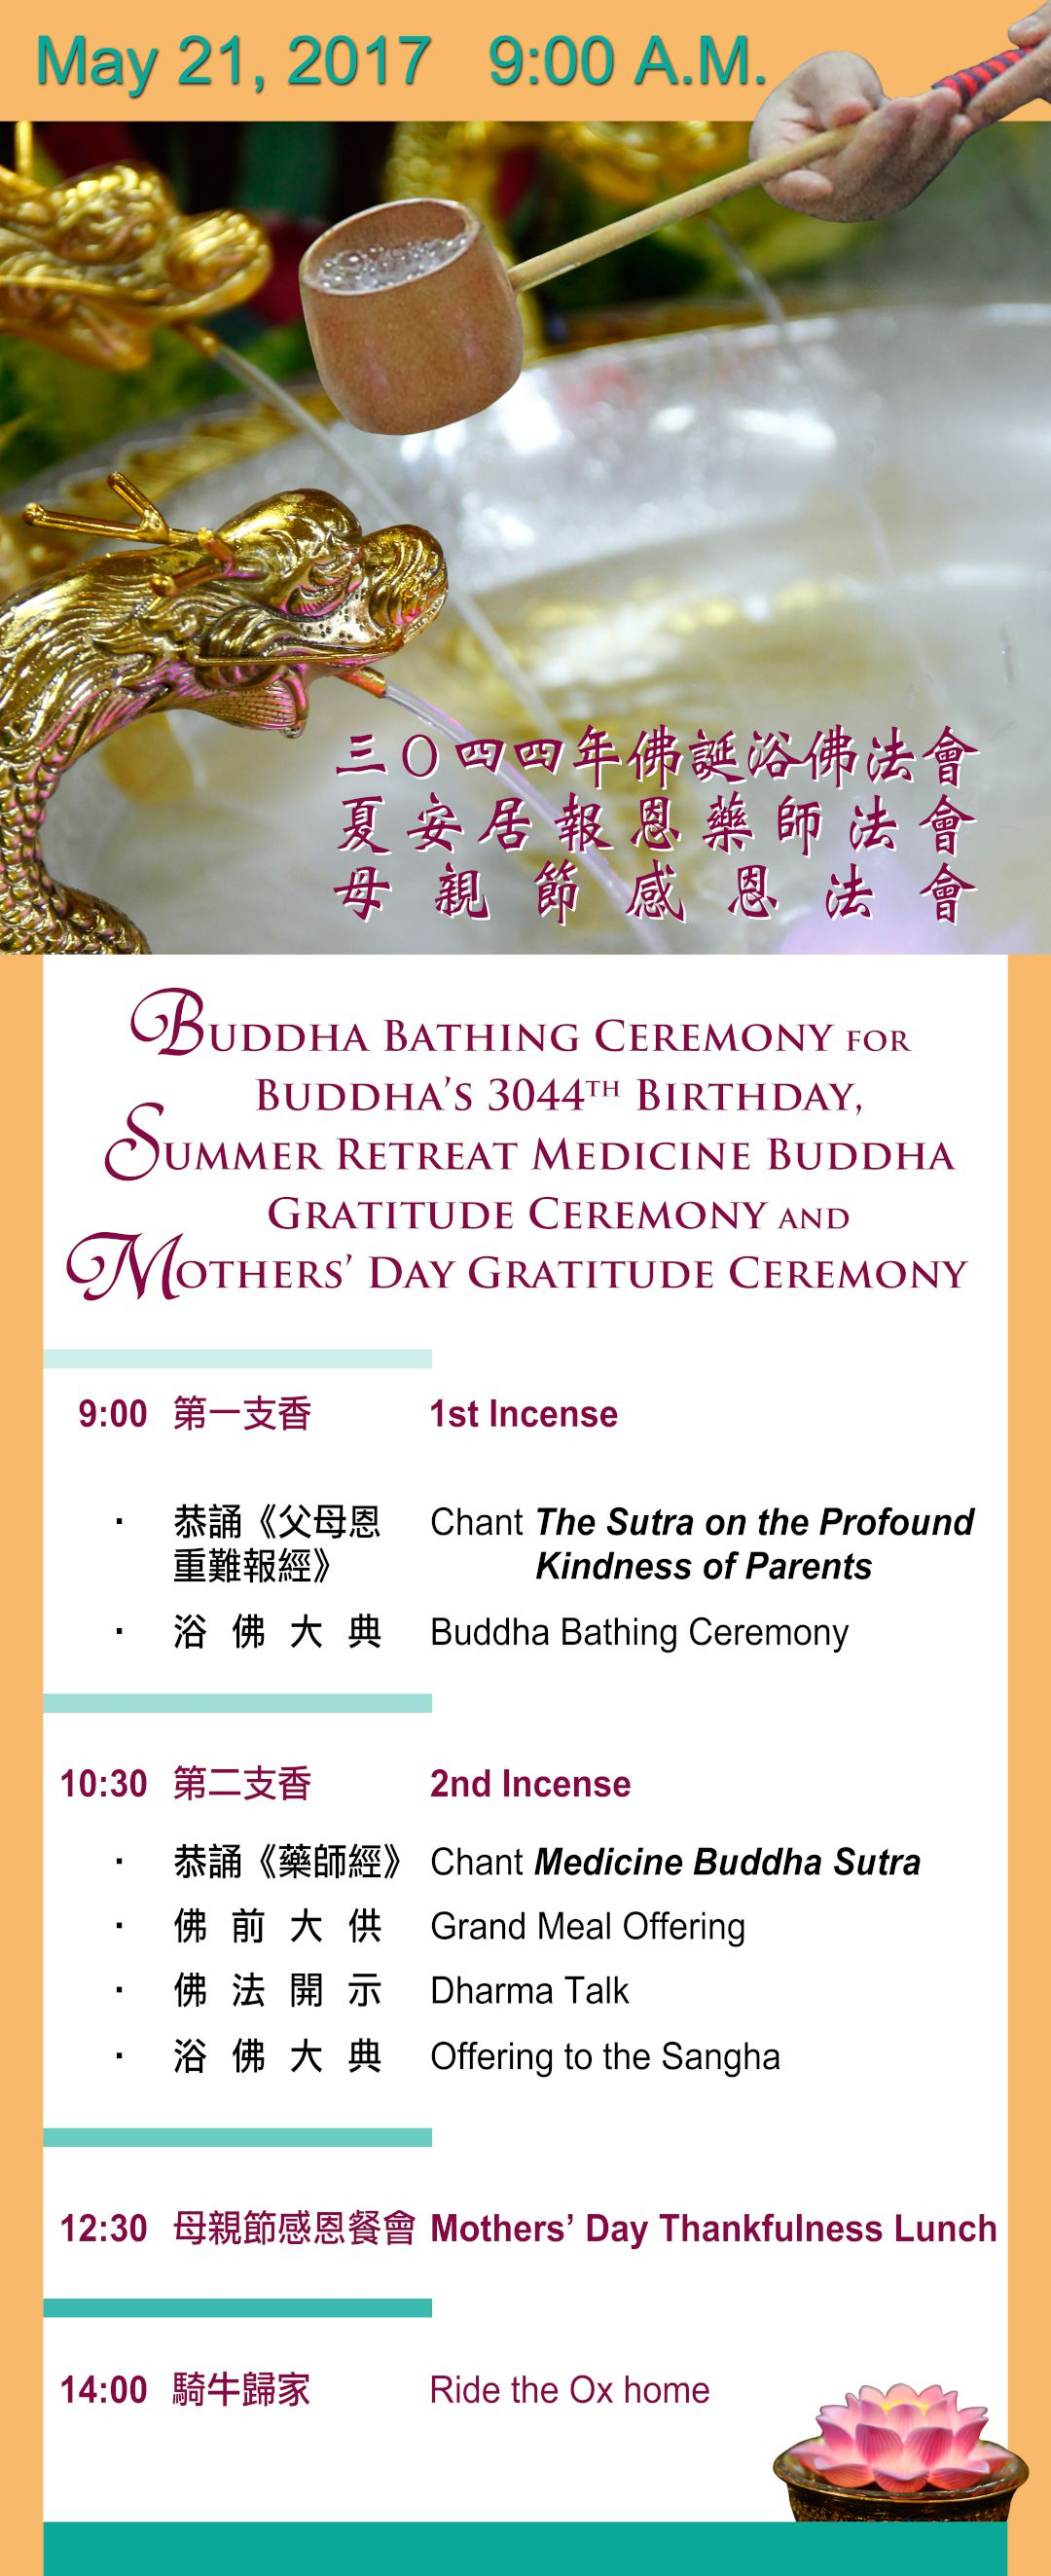 Buddha Bathing Ceremony